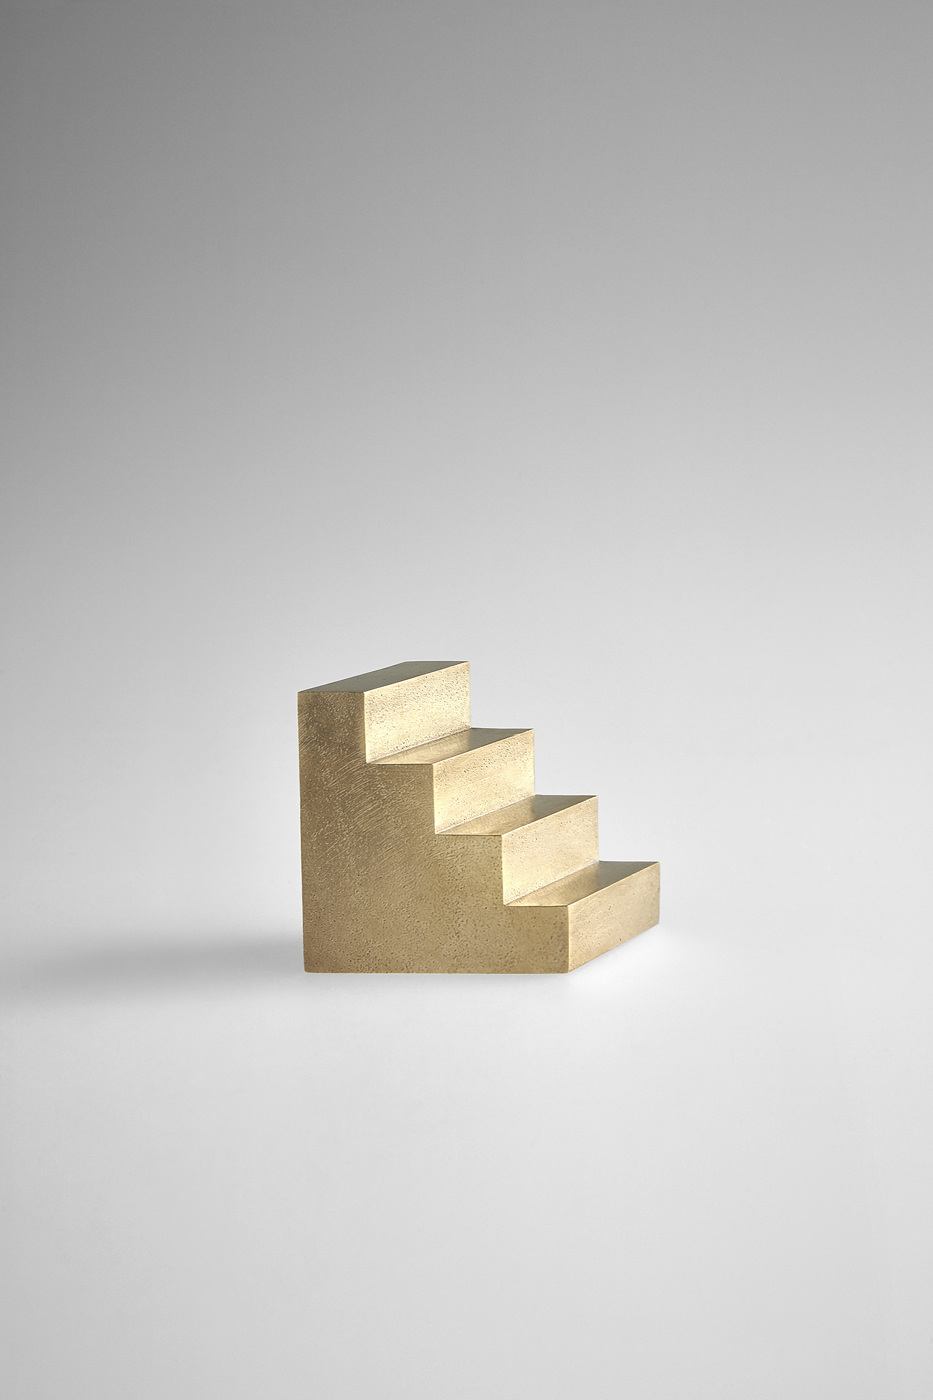 Brass Staircase Paperweight Studiokyss